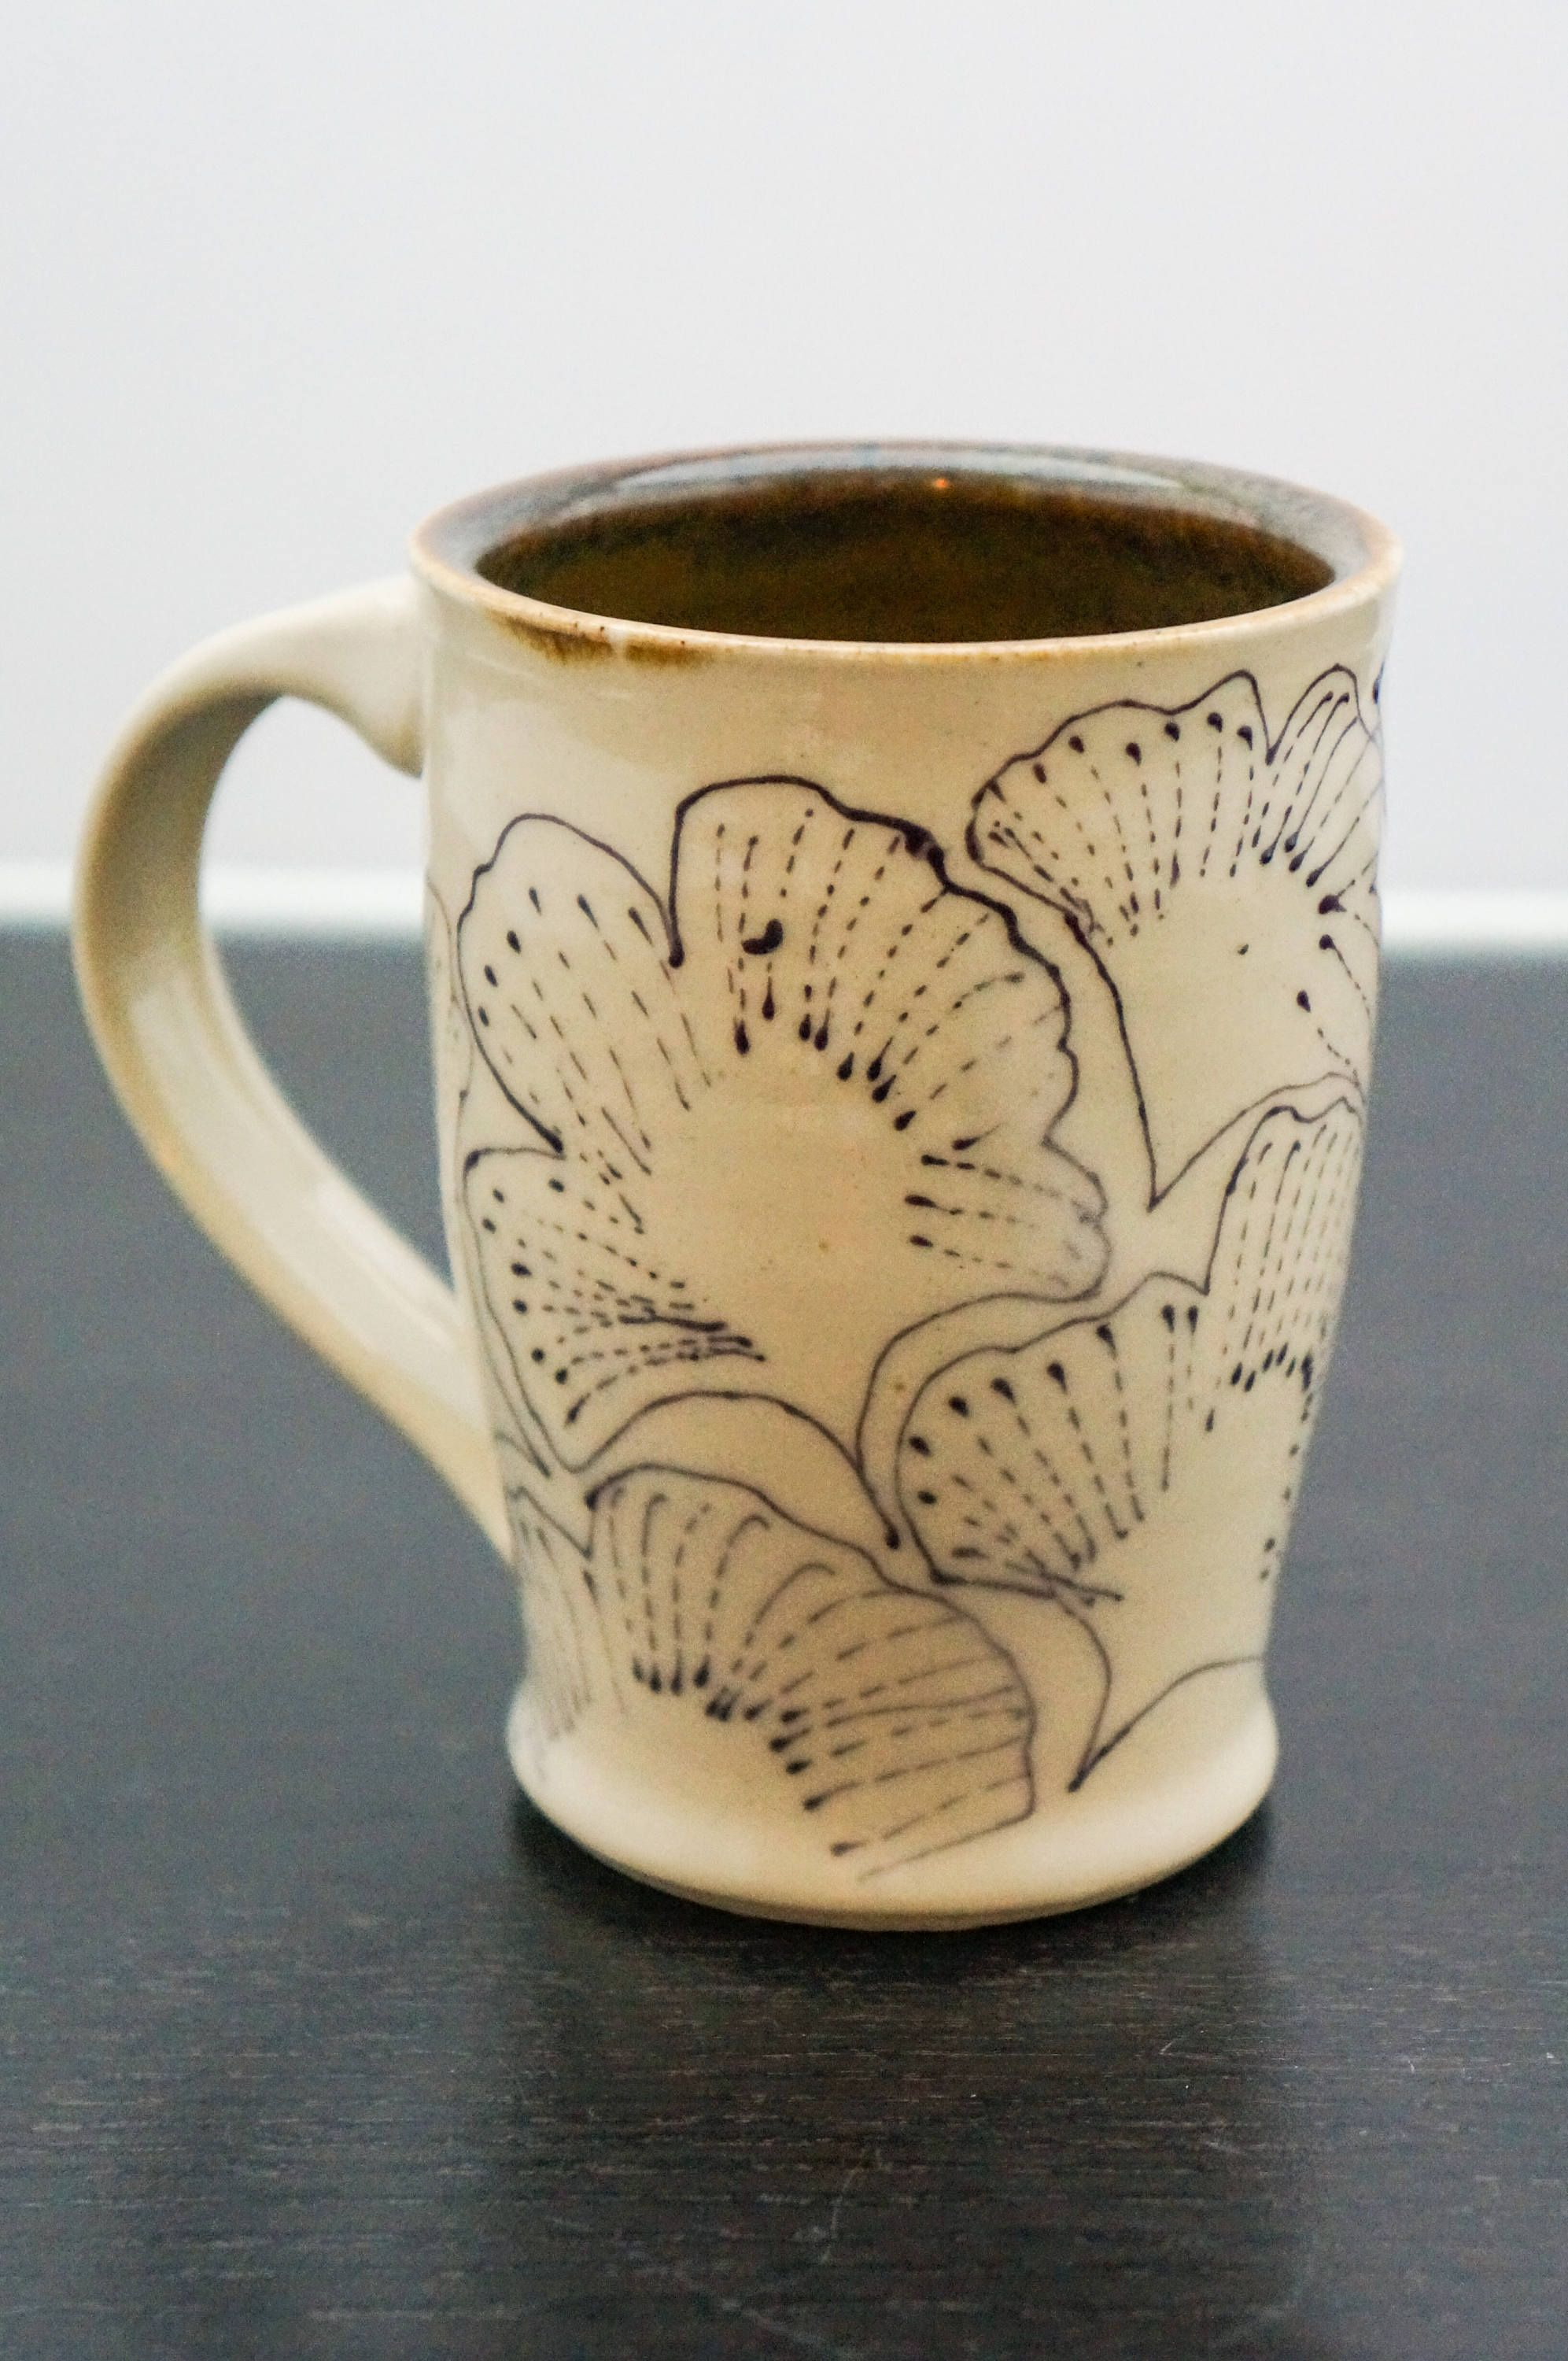 This Pottery Coffee Mug With The Gingko Design Would Make The Perfect Unique Gift For The Special Person In Your Life Pottery Coffee Mug Pottery Ceramics Mugs